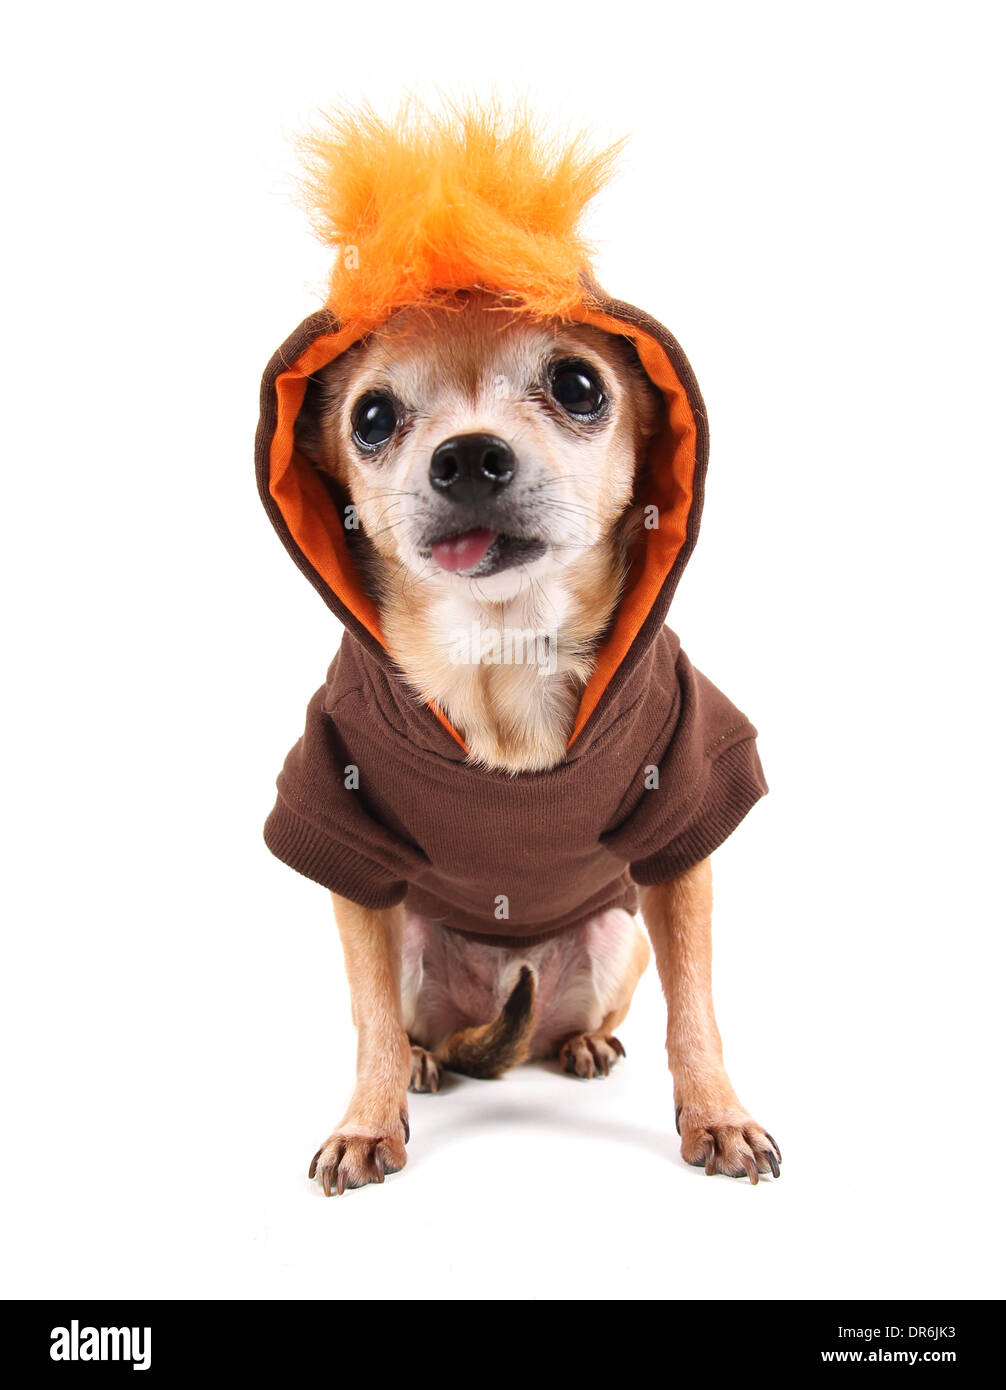 cute chihuahua with a costume on  sc 1 st  Alamy & cute chihuahua with a costume on Stock Photo: 65914551 - Alamy